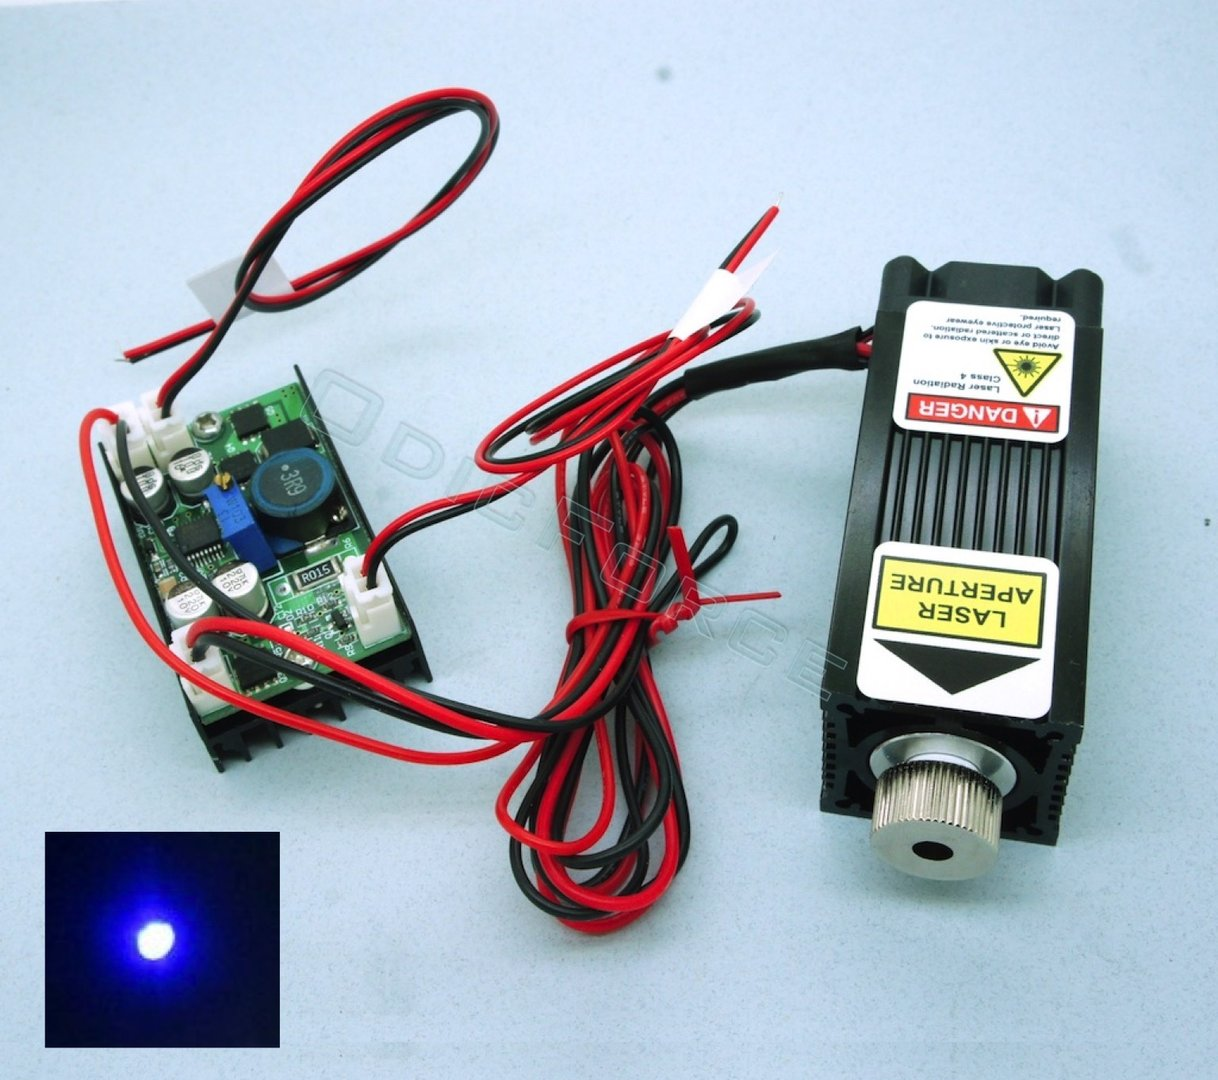 5W 450nm Blue Focusing Laser Module (12V) with TTL Driver